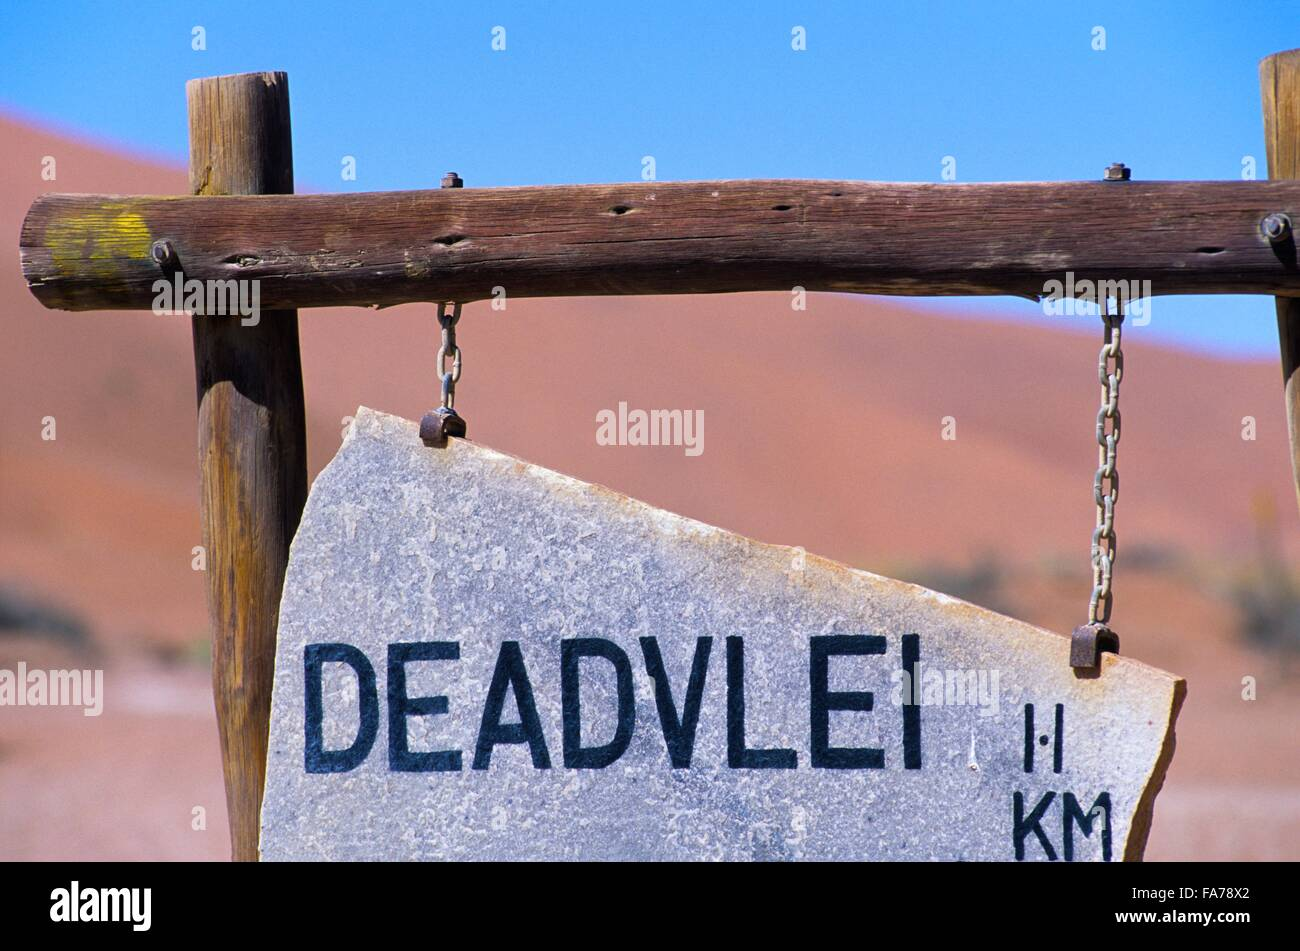 Namibia, Namib-Naukluft National park, Sossusvlei, Deadvlei sign // Namibie, Namib-Naukluft National park, Sossusvlei - Stock Image